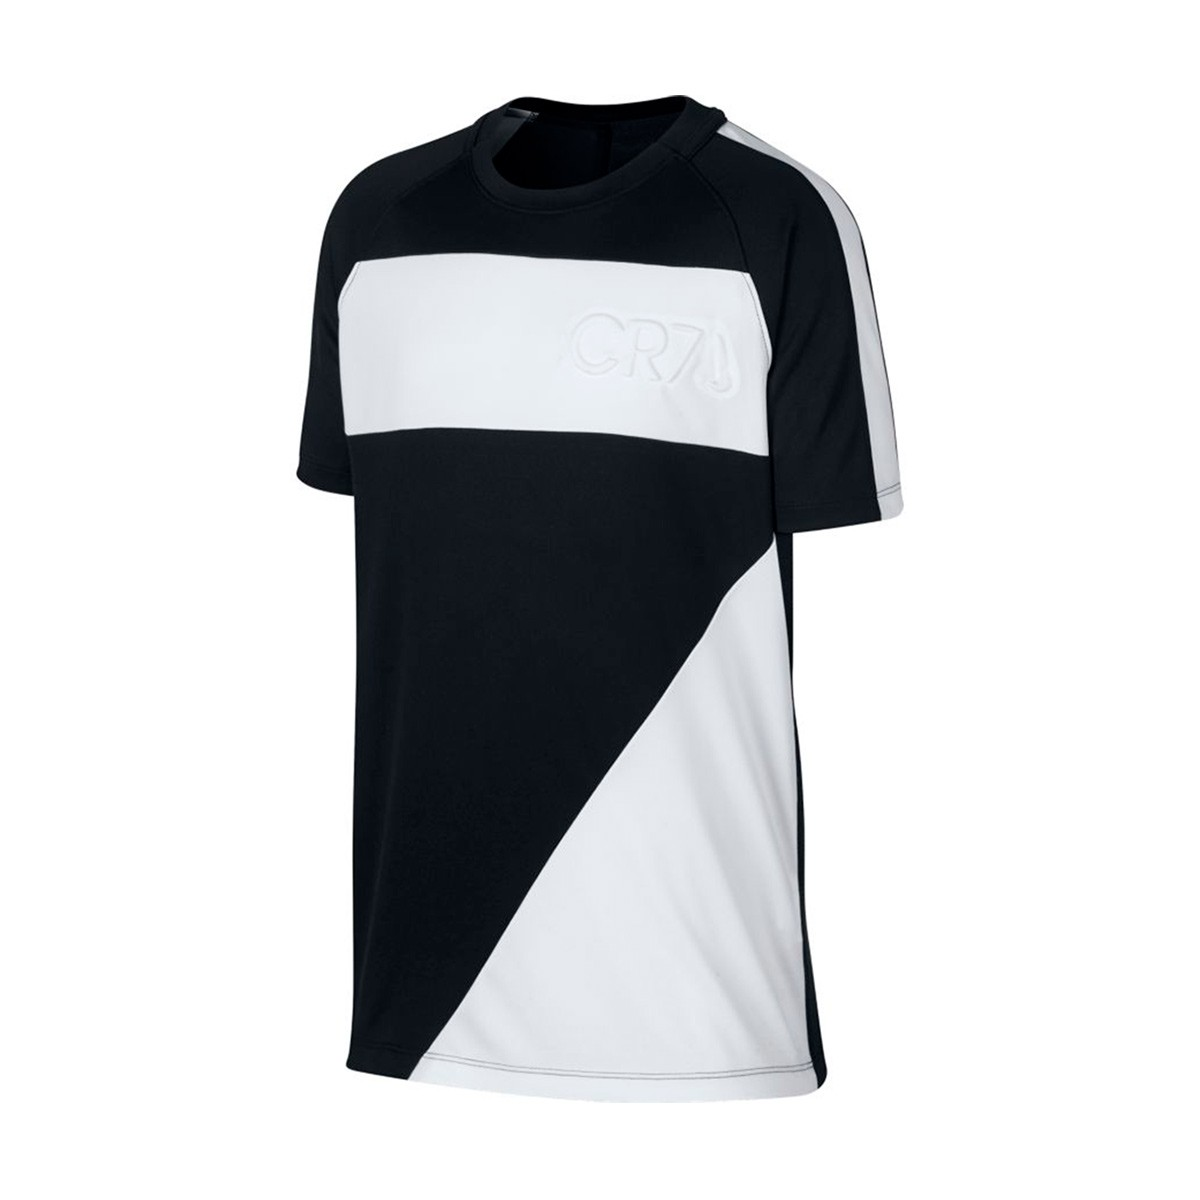 detailed look df448 a65b5 Camiseta Dry CR7 Niño Black-White